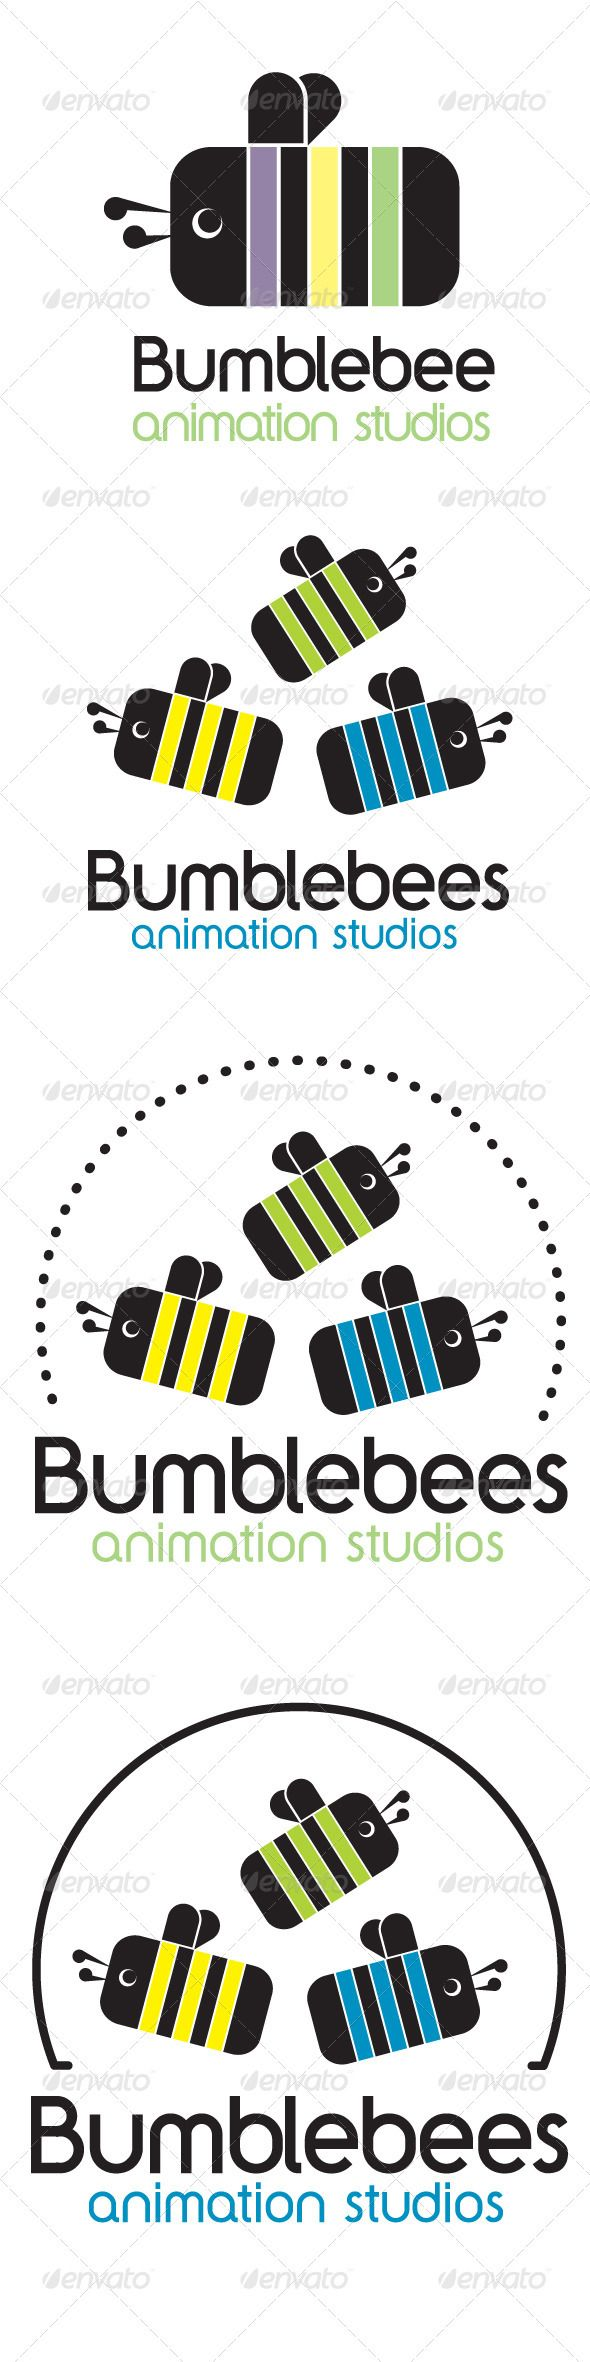 Logo Templates Illustrator. 54 best images about logo templates on ...